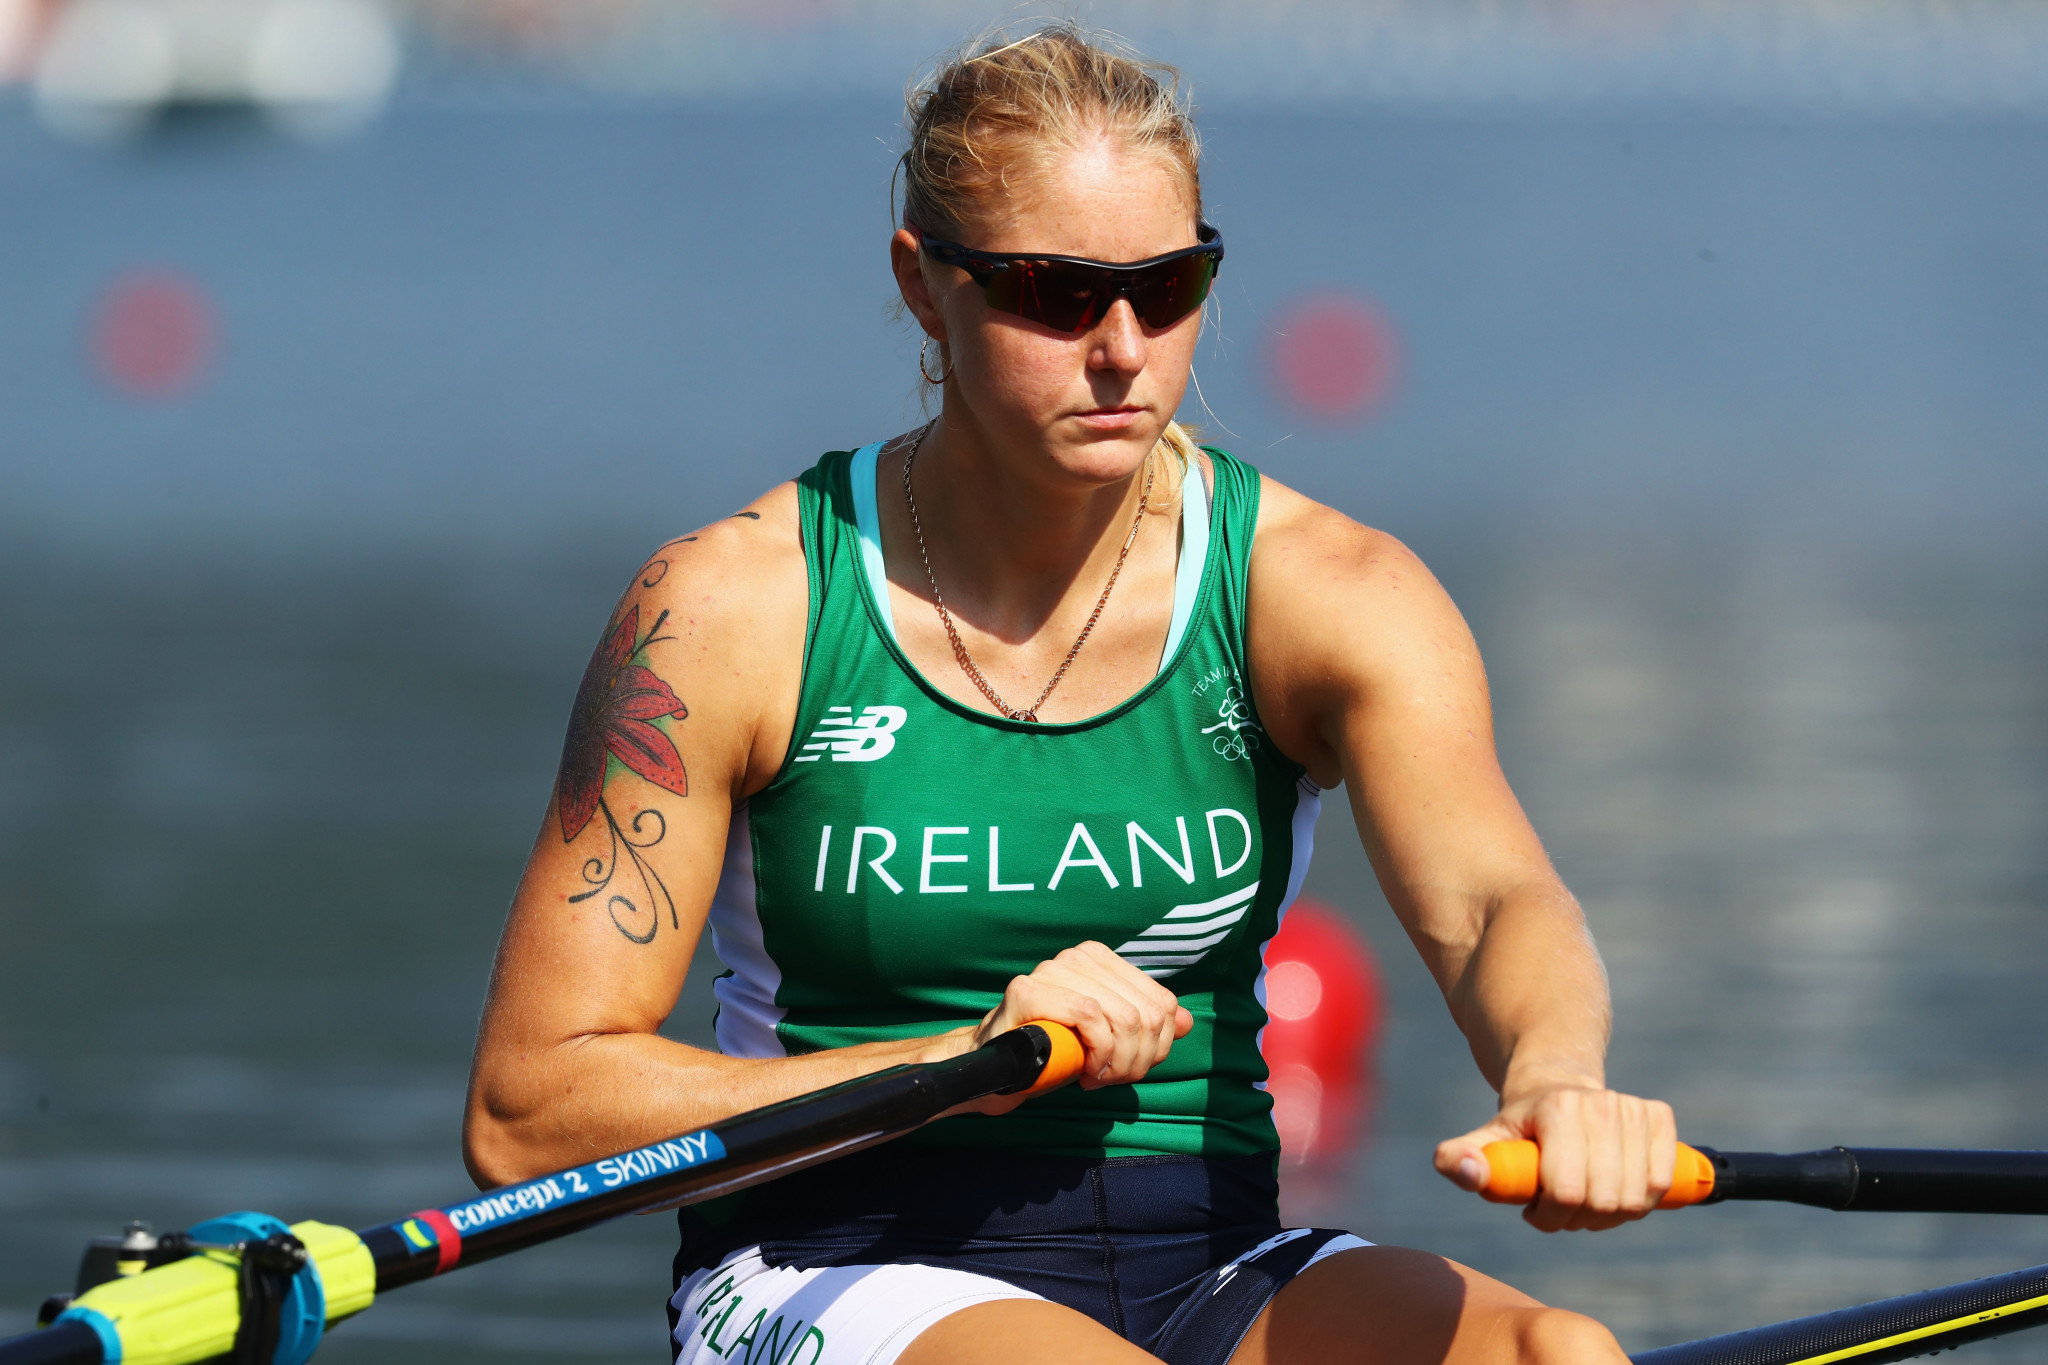 World champion Sanita Puspure of Ireland was dominant in her women's single sculls heat at the European Rowing Championships ©Getty Images